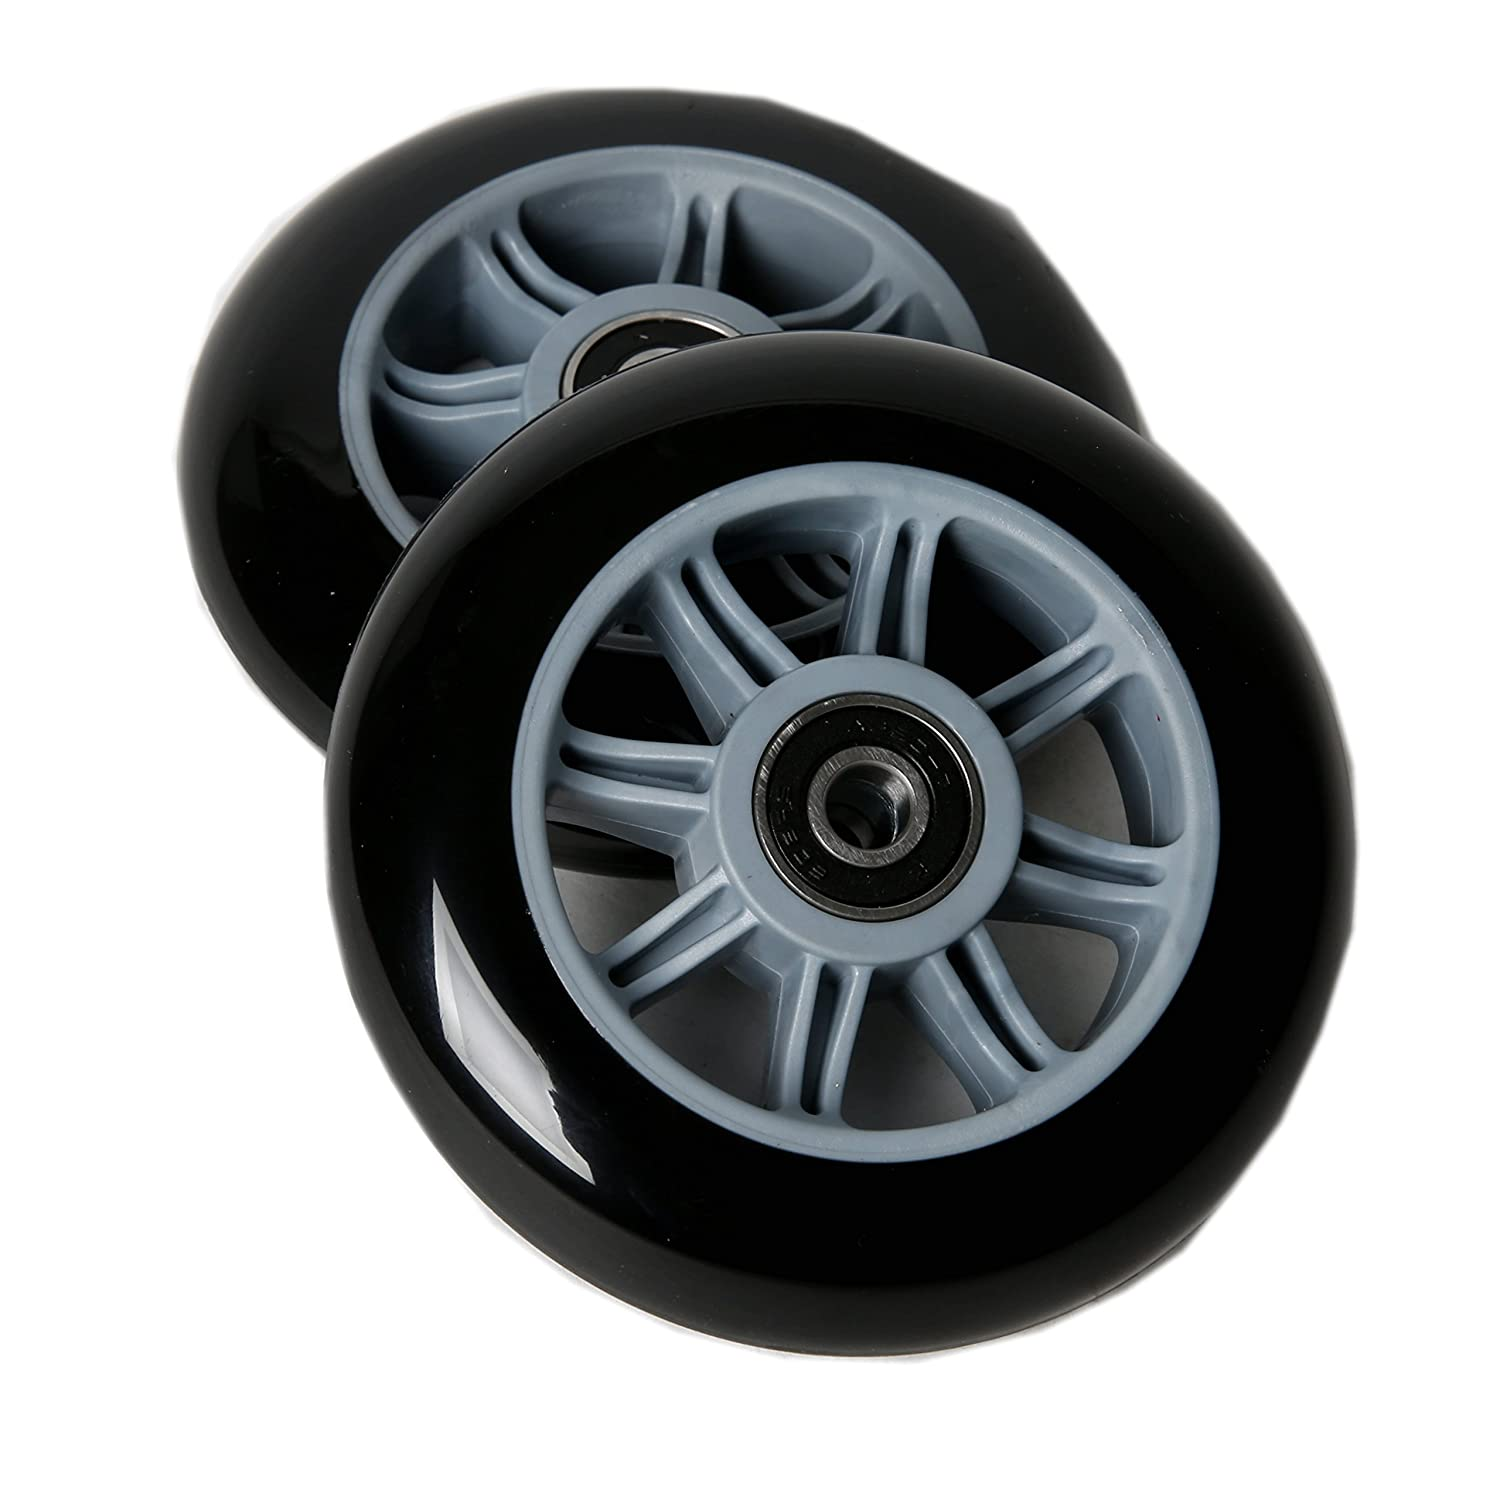 FREEDARE Scooter Wheels 100mm for Scooter Replacement Wheels with Bearings Pack of 2